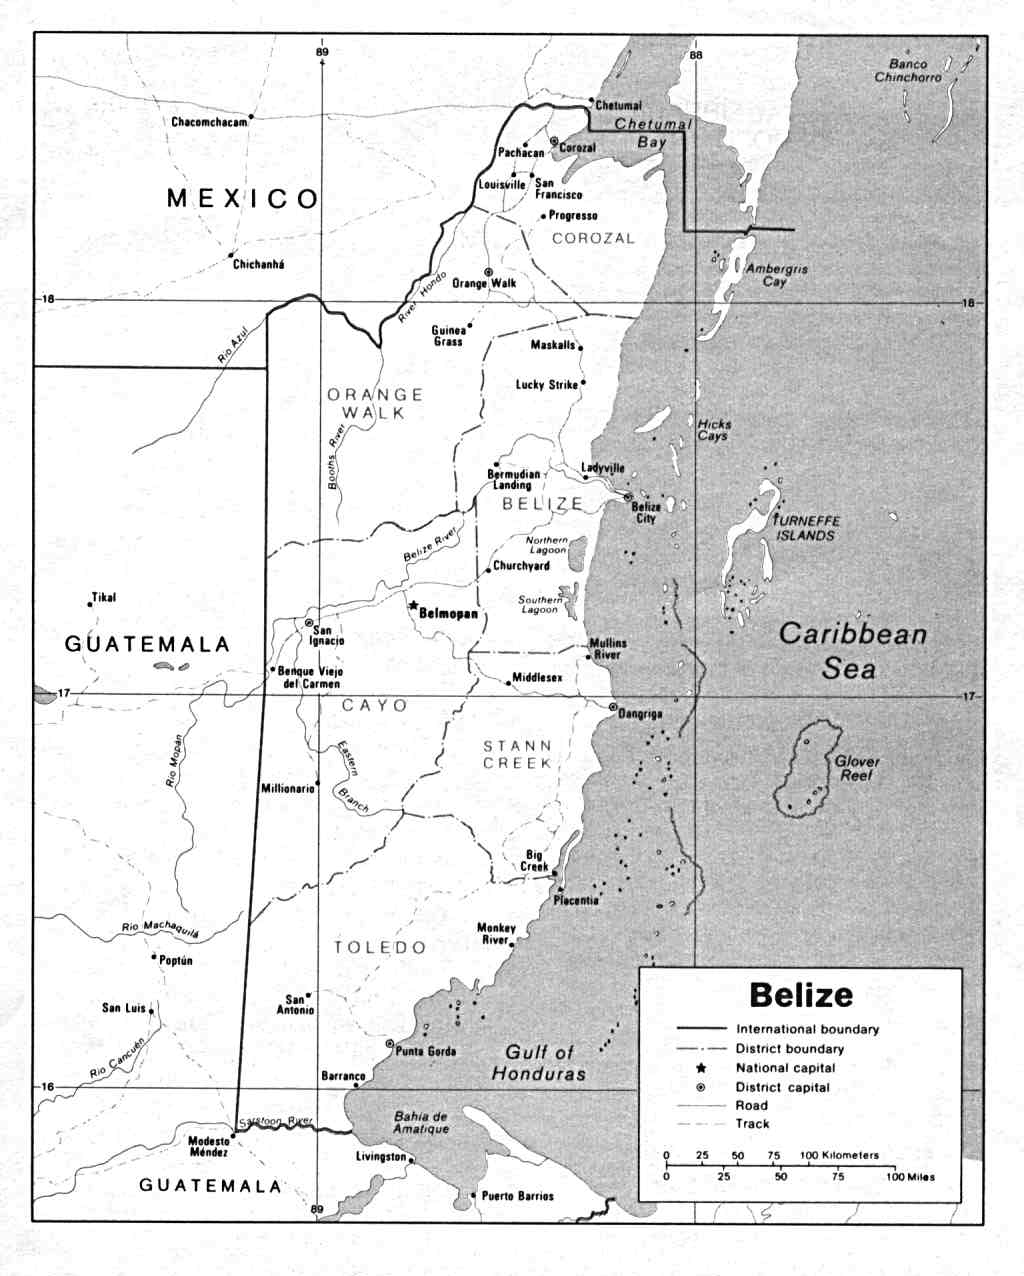 Map Of Belize, Belize [Political Map] U.S. Department of State 1990 (91K)